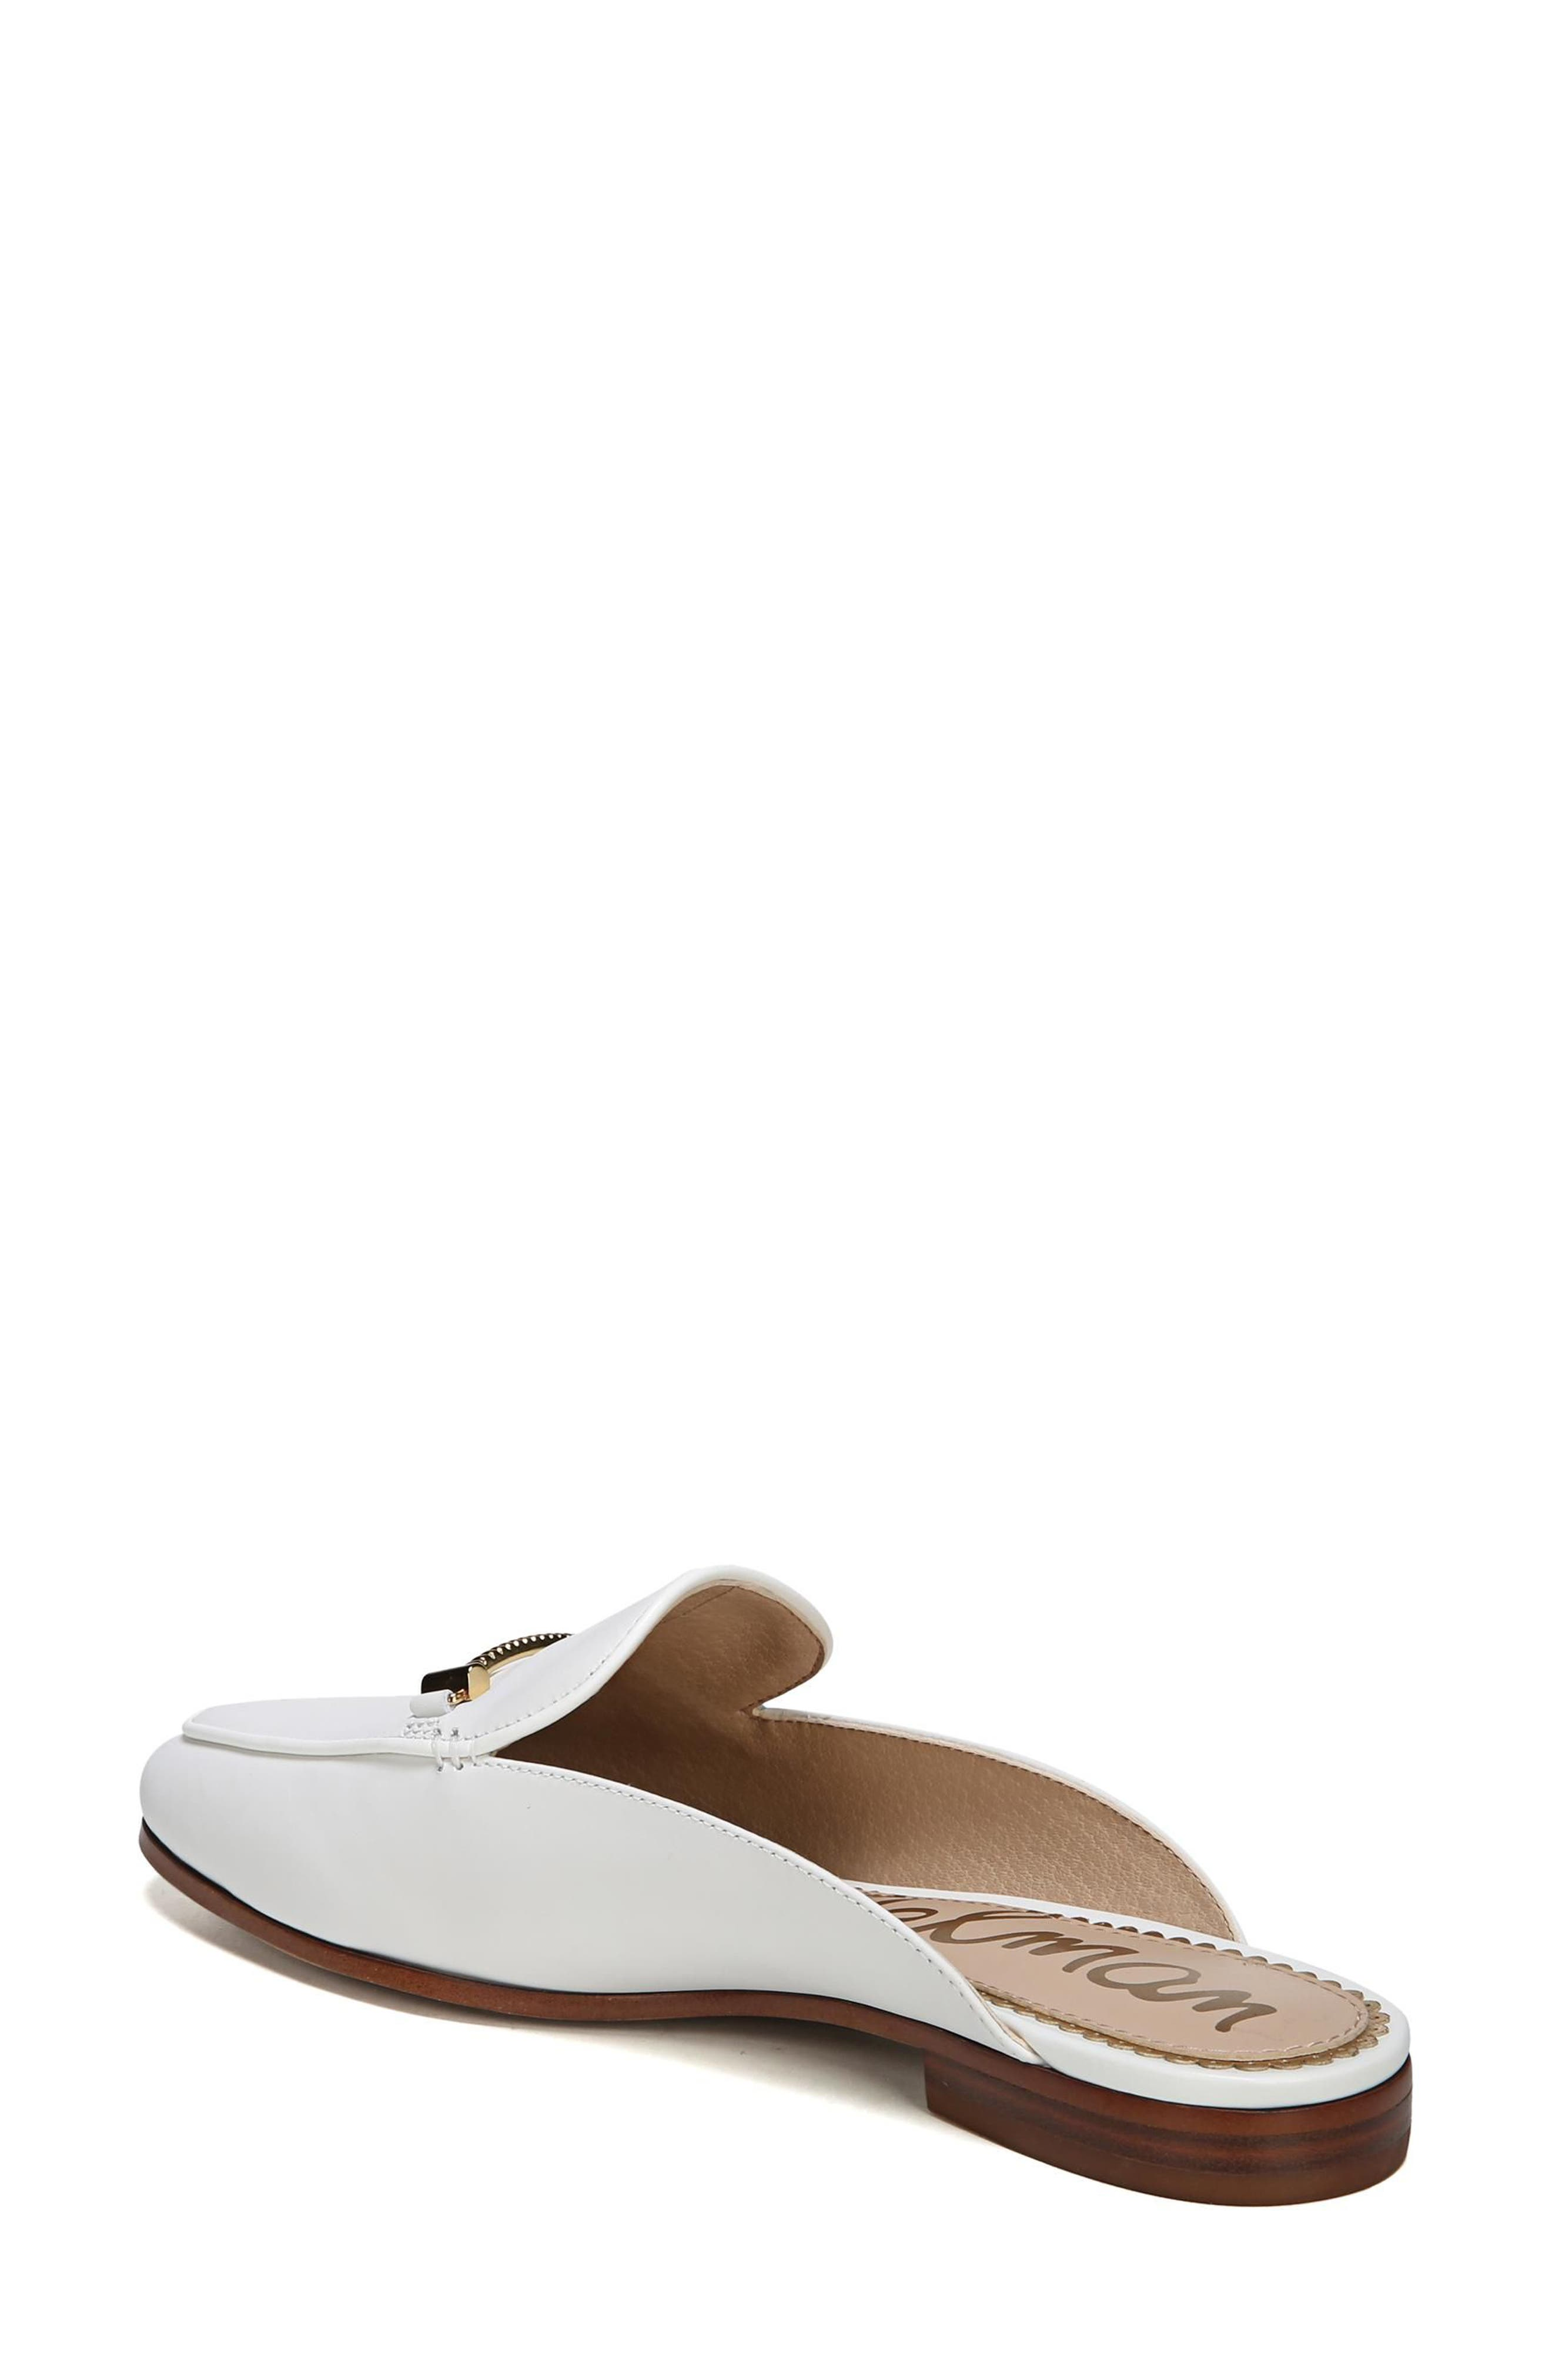 Laurna Mule,                             Alternate thumbnail 2, color,                             BRIGHT WHITE LEATHER